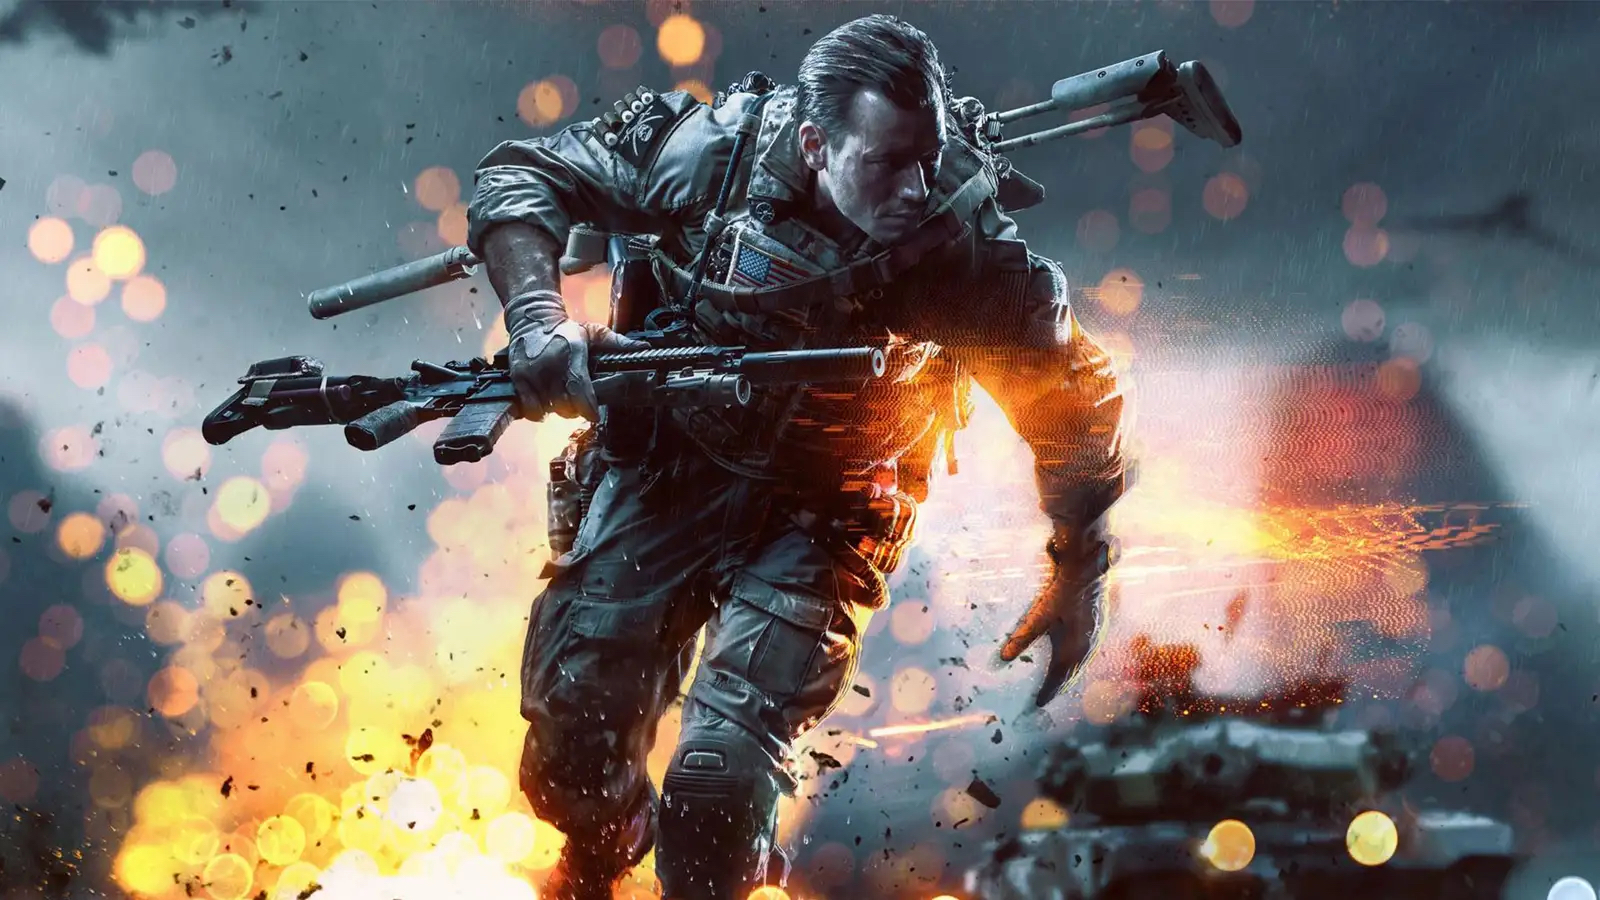 shooting-in-Battlefield-2042 Preparing for Battlefield 2042? Here are 5 HUGE Tips for BF4